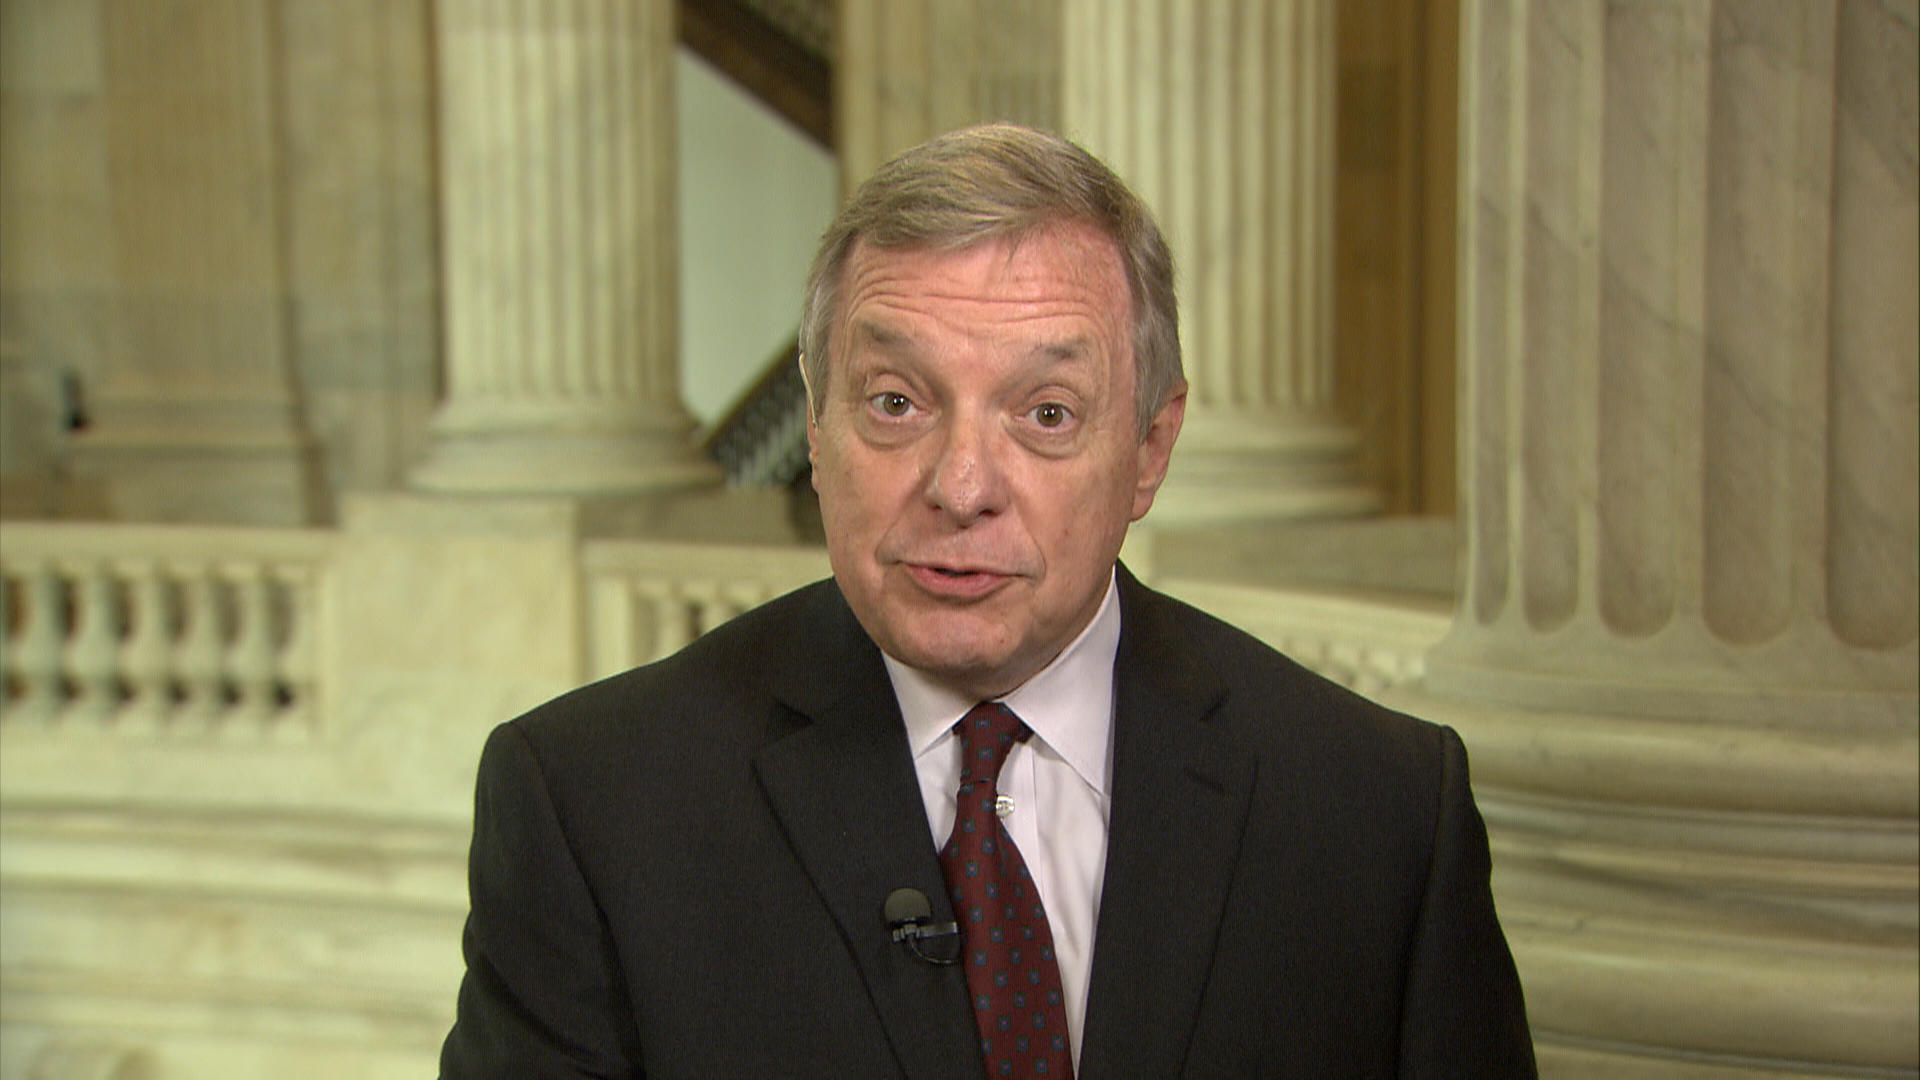 Dick Durbin: Voters want immigration reform